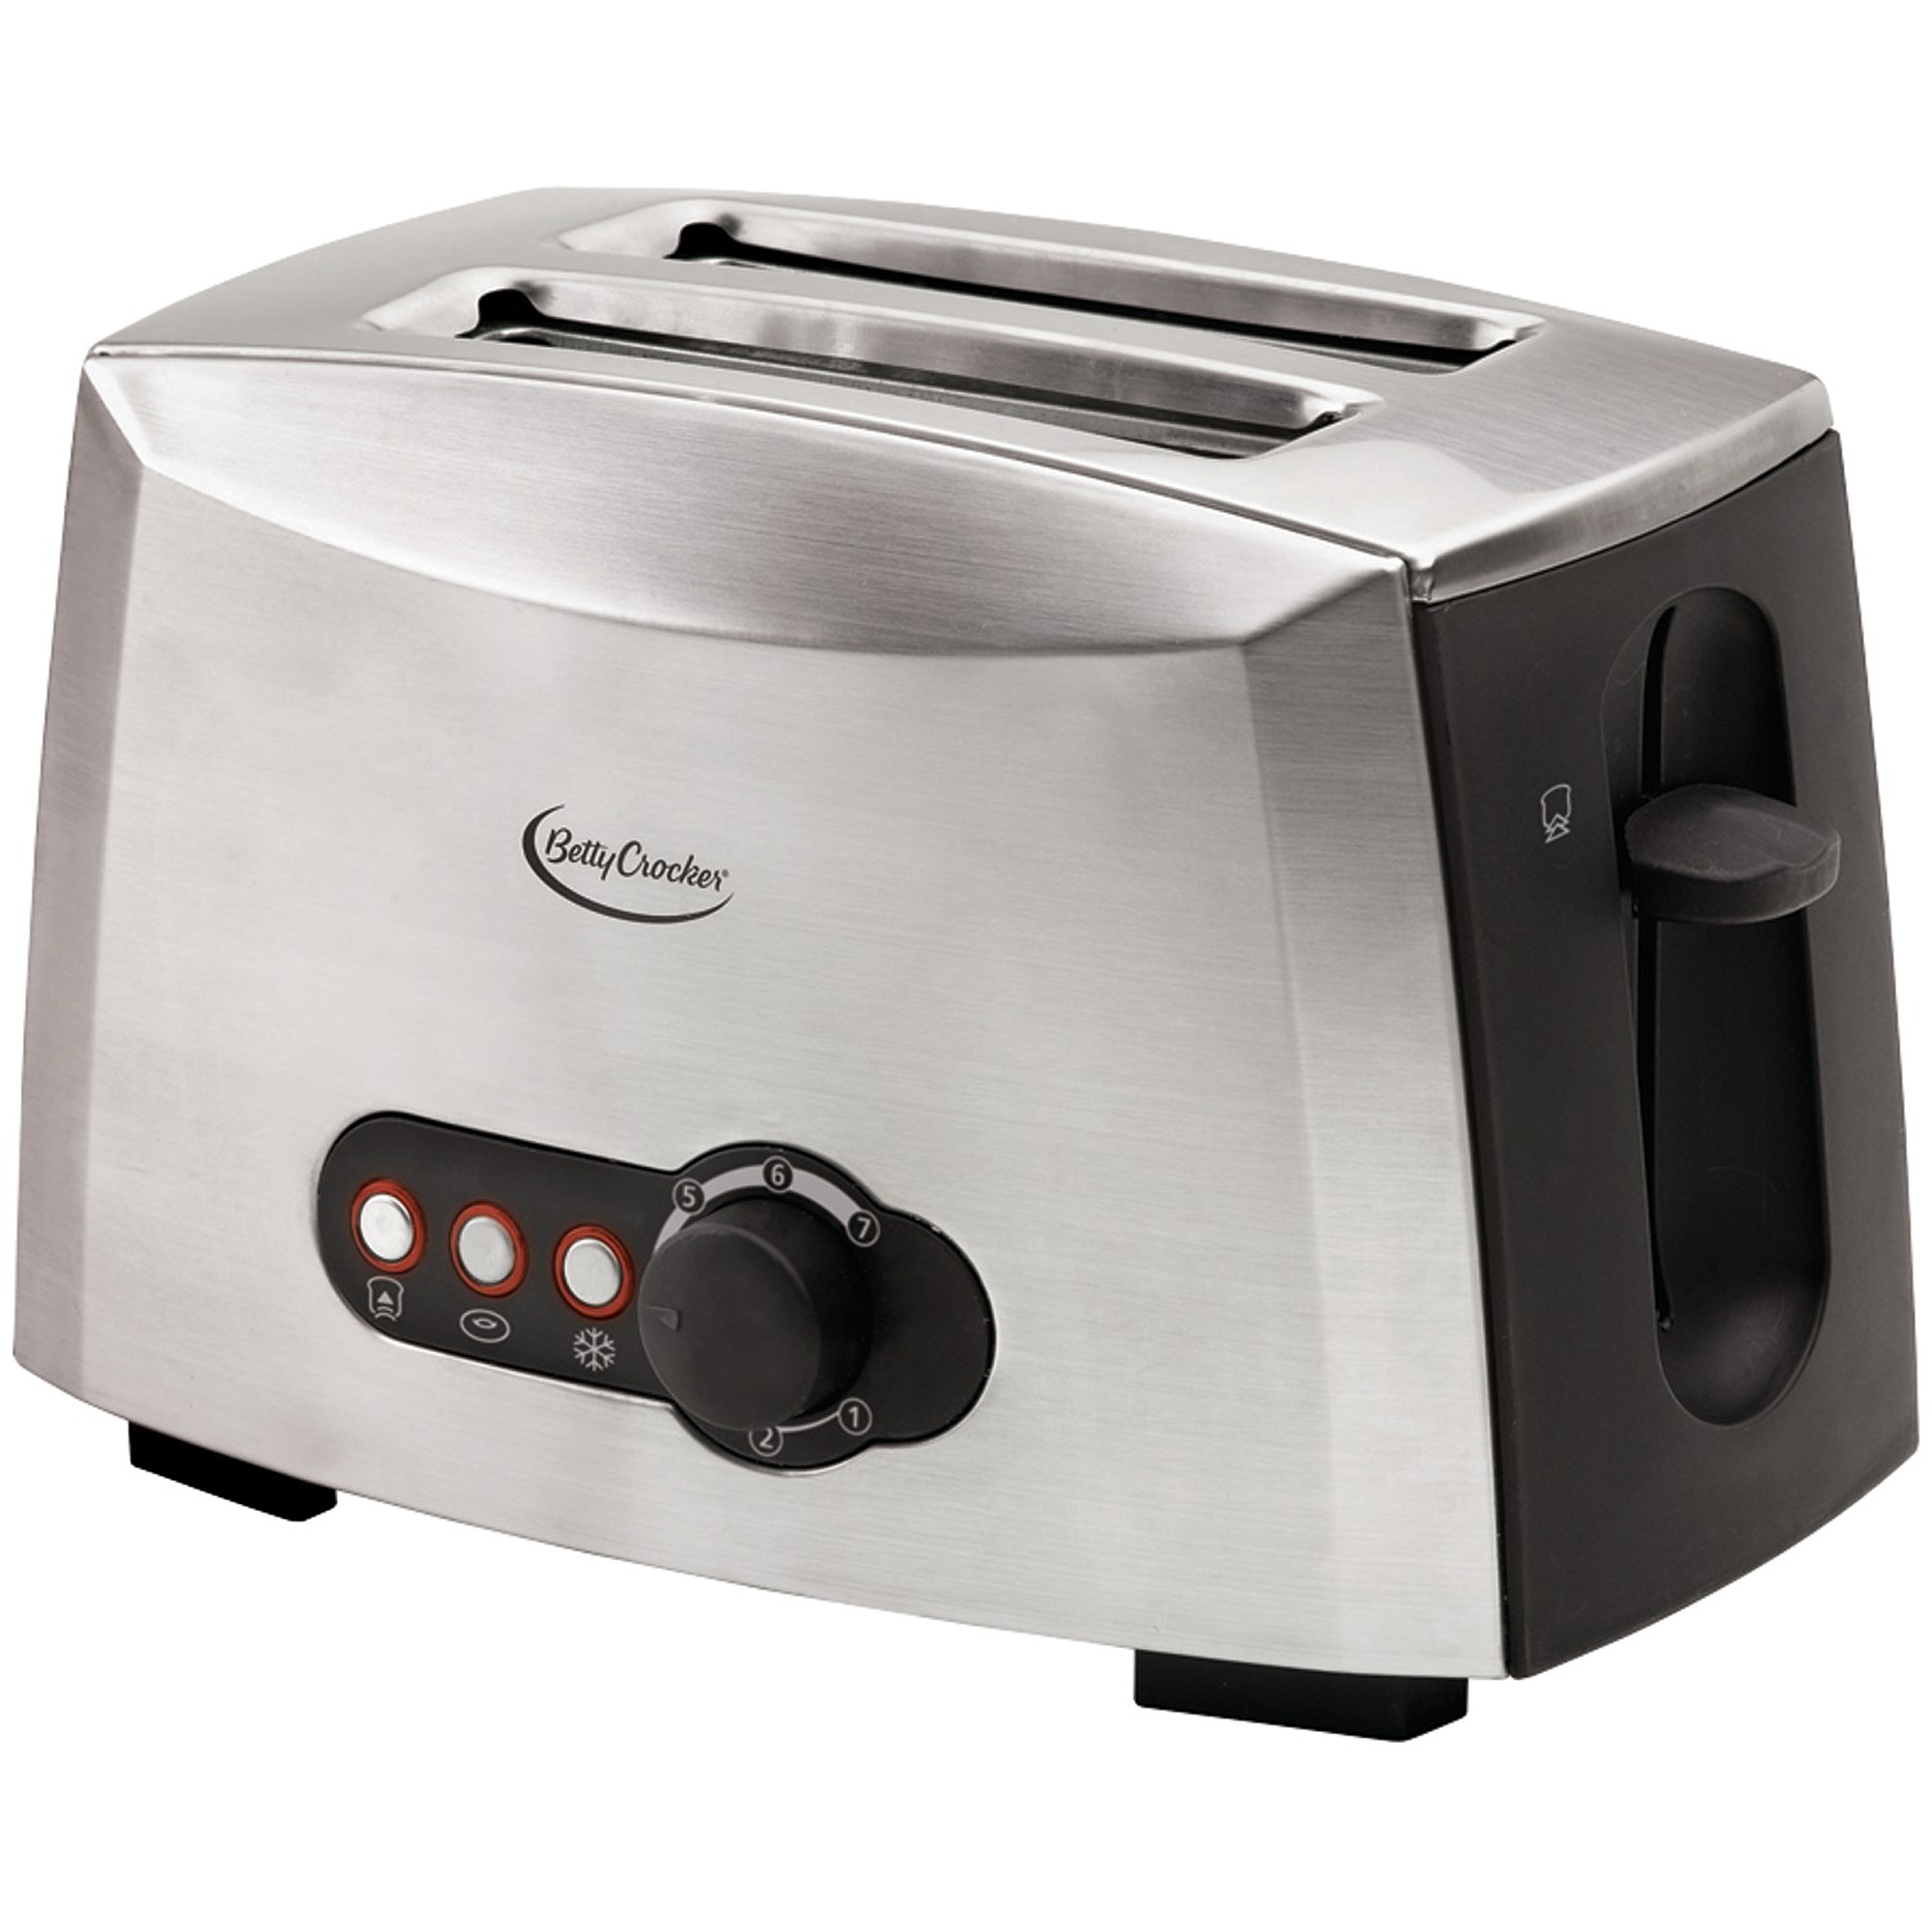 Betty Crocker 2-Slice Toaster, Brushed Stainless Steel by BETTY CROCKER